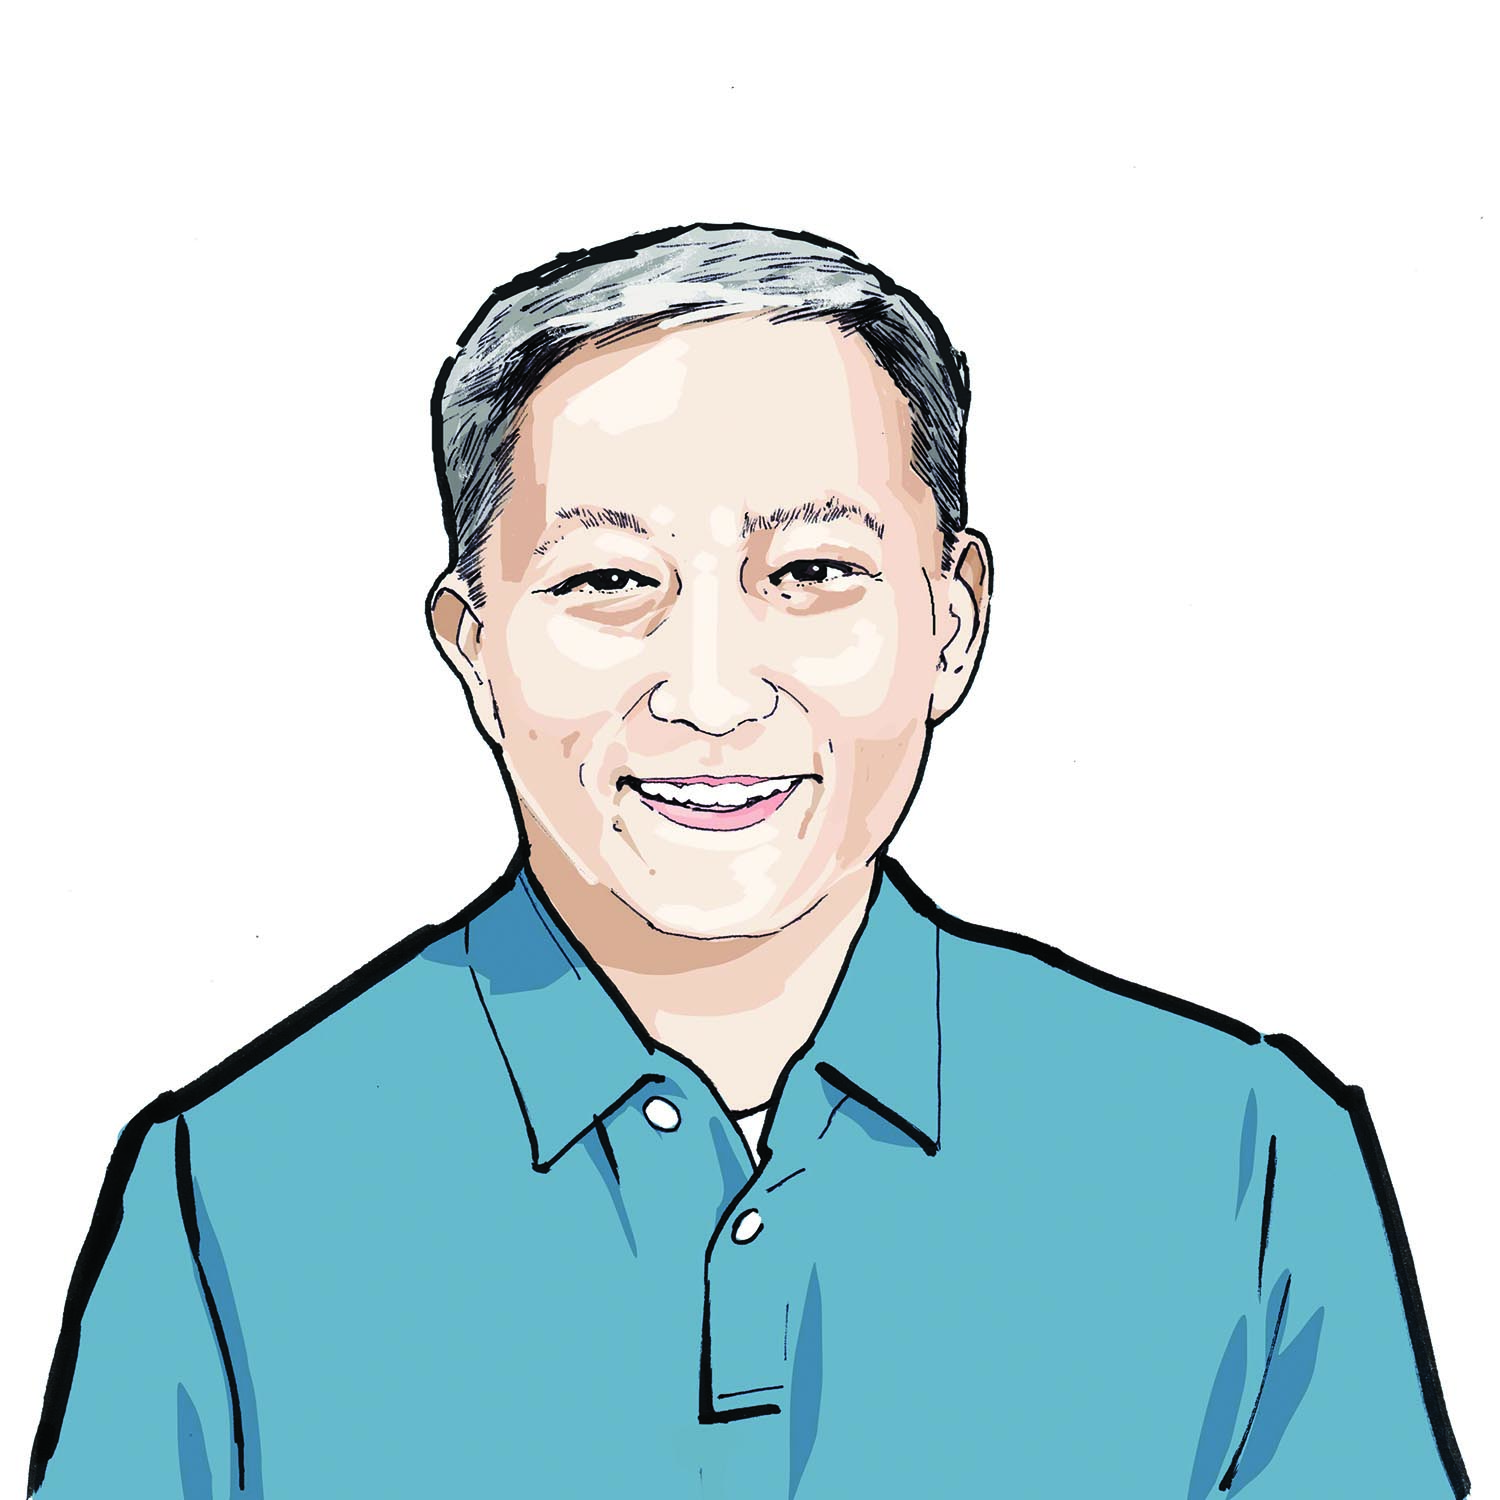 Illustration of Benjamin Tan, '06